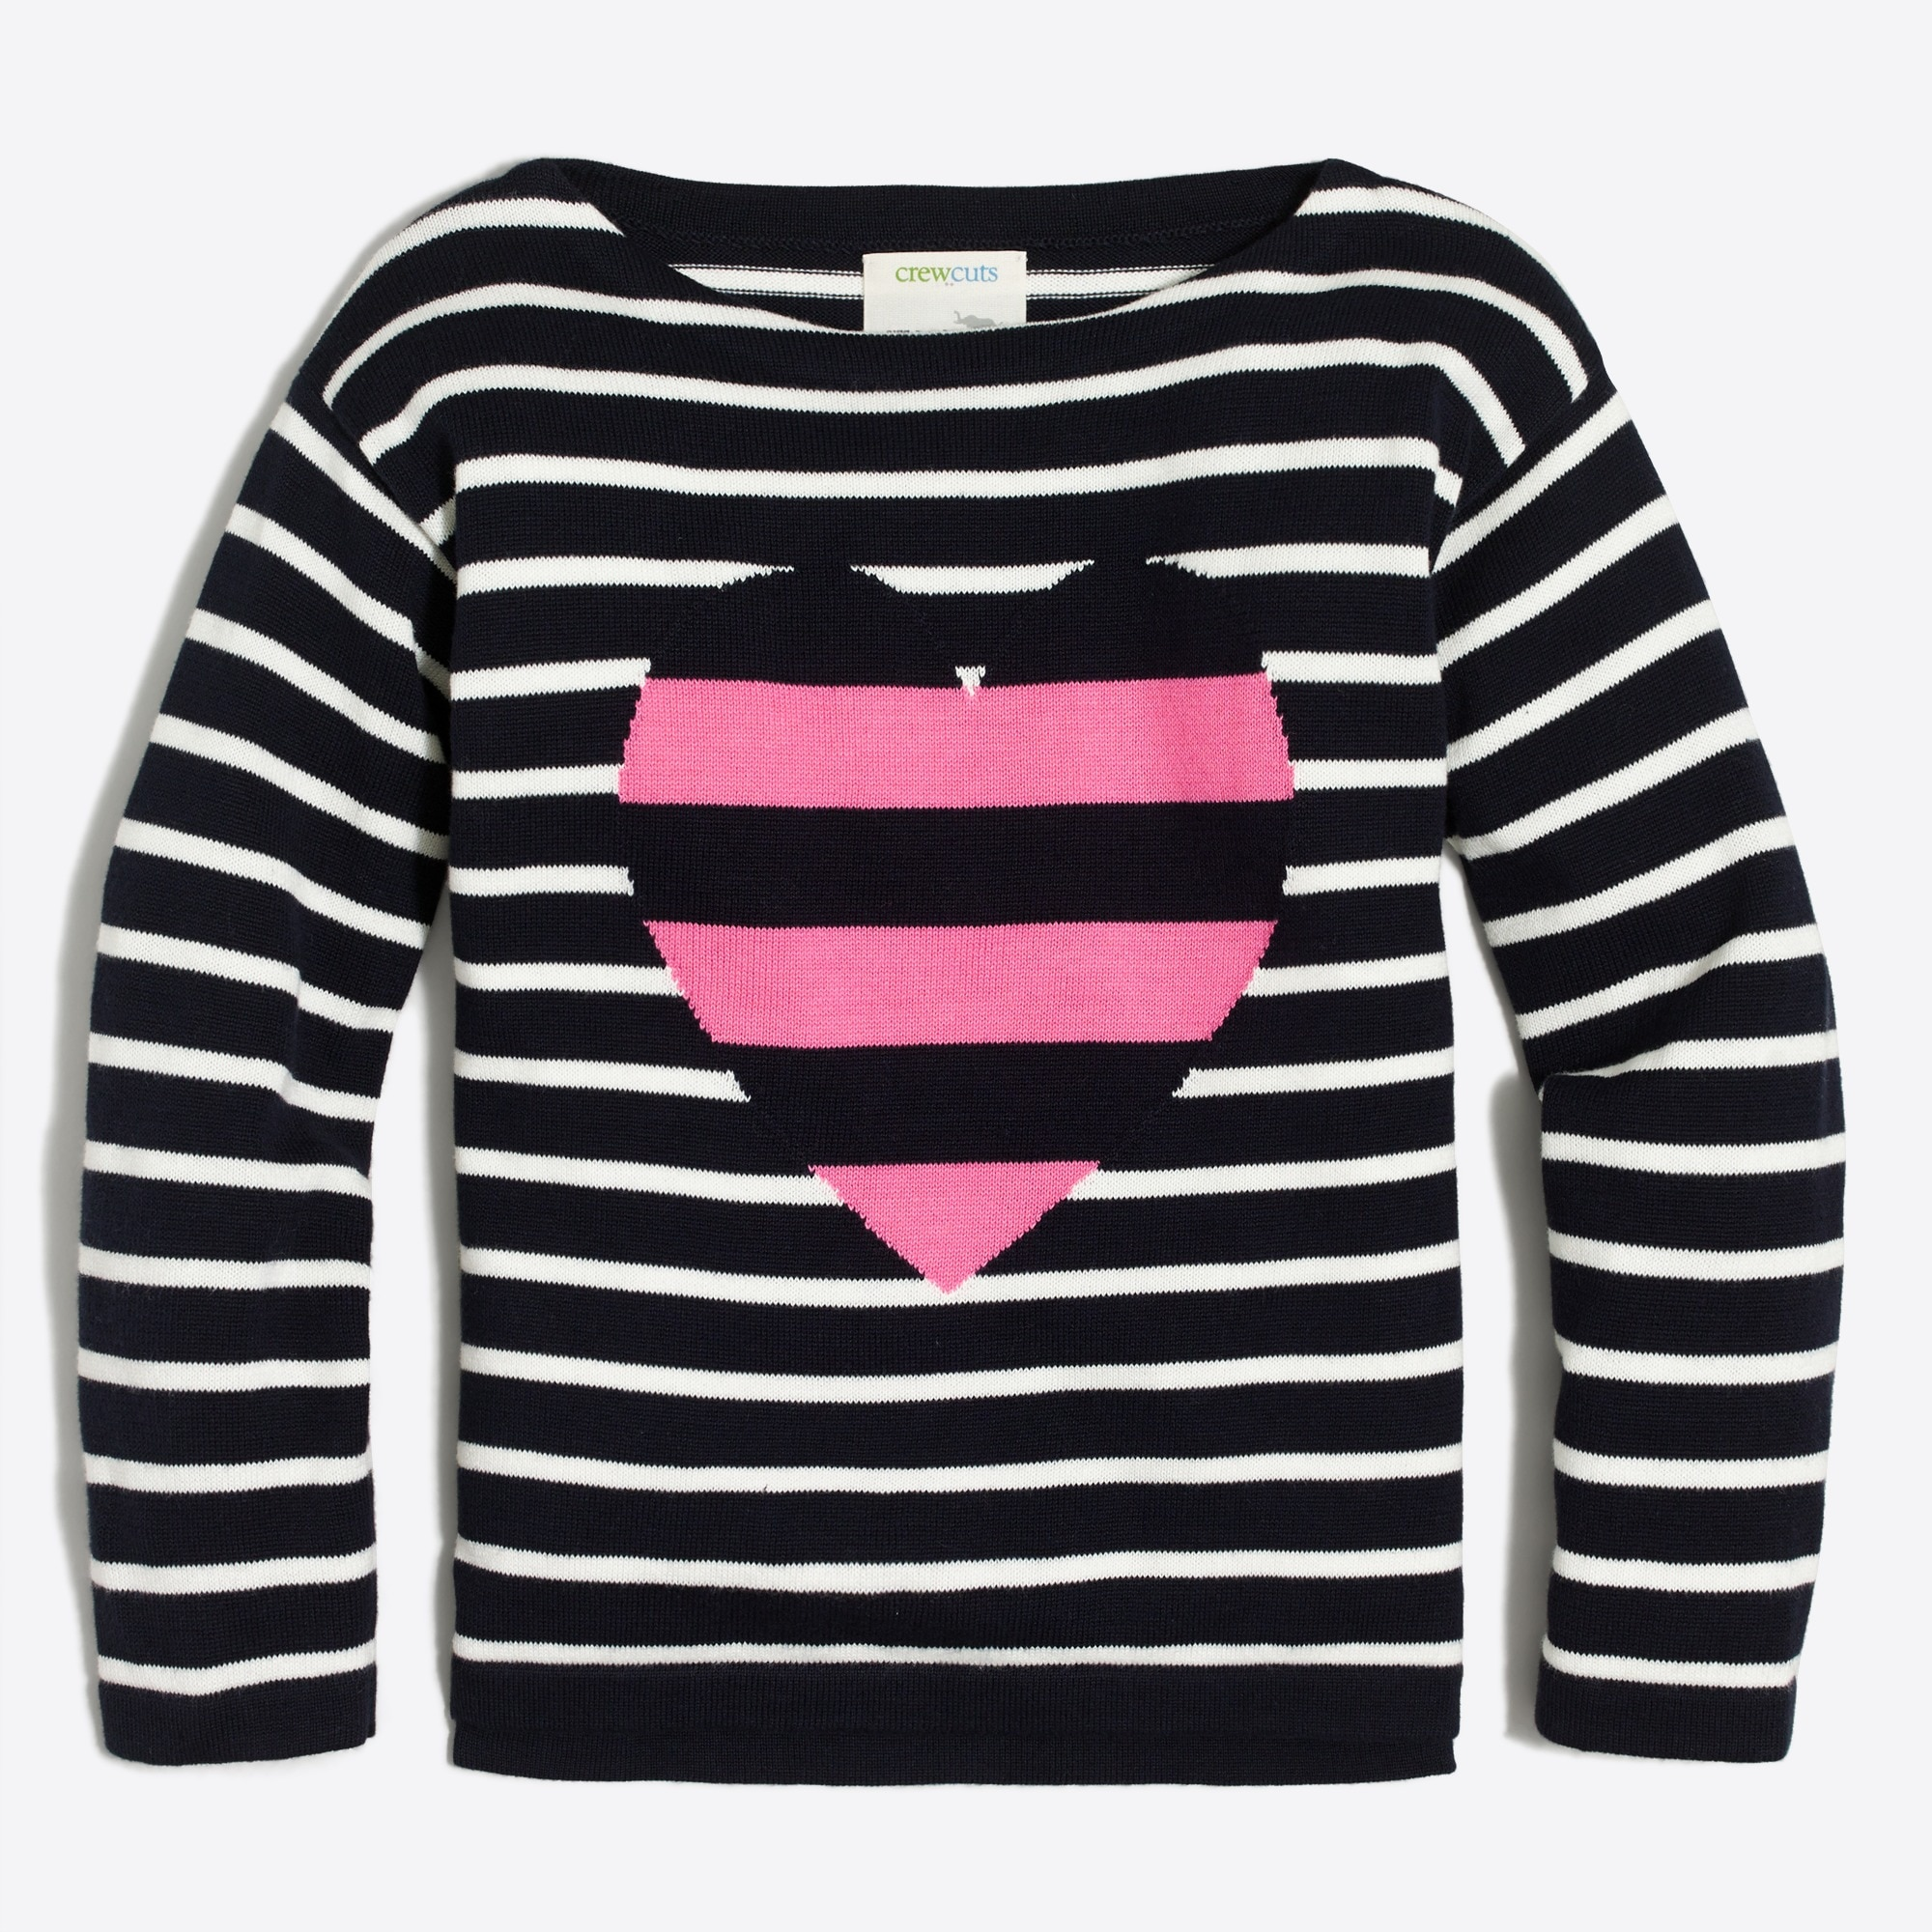 girls' striped heart popover sweater : factorygirls sweaters